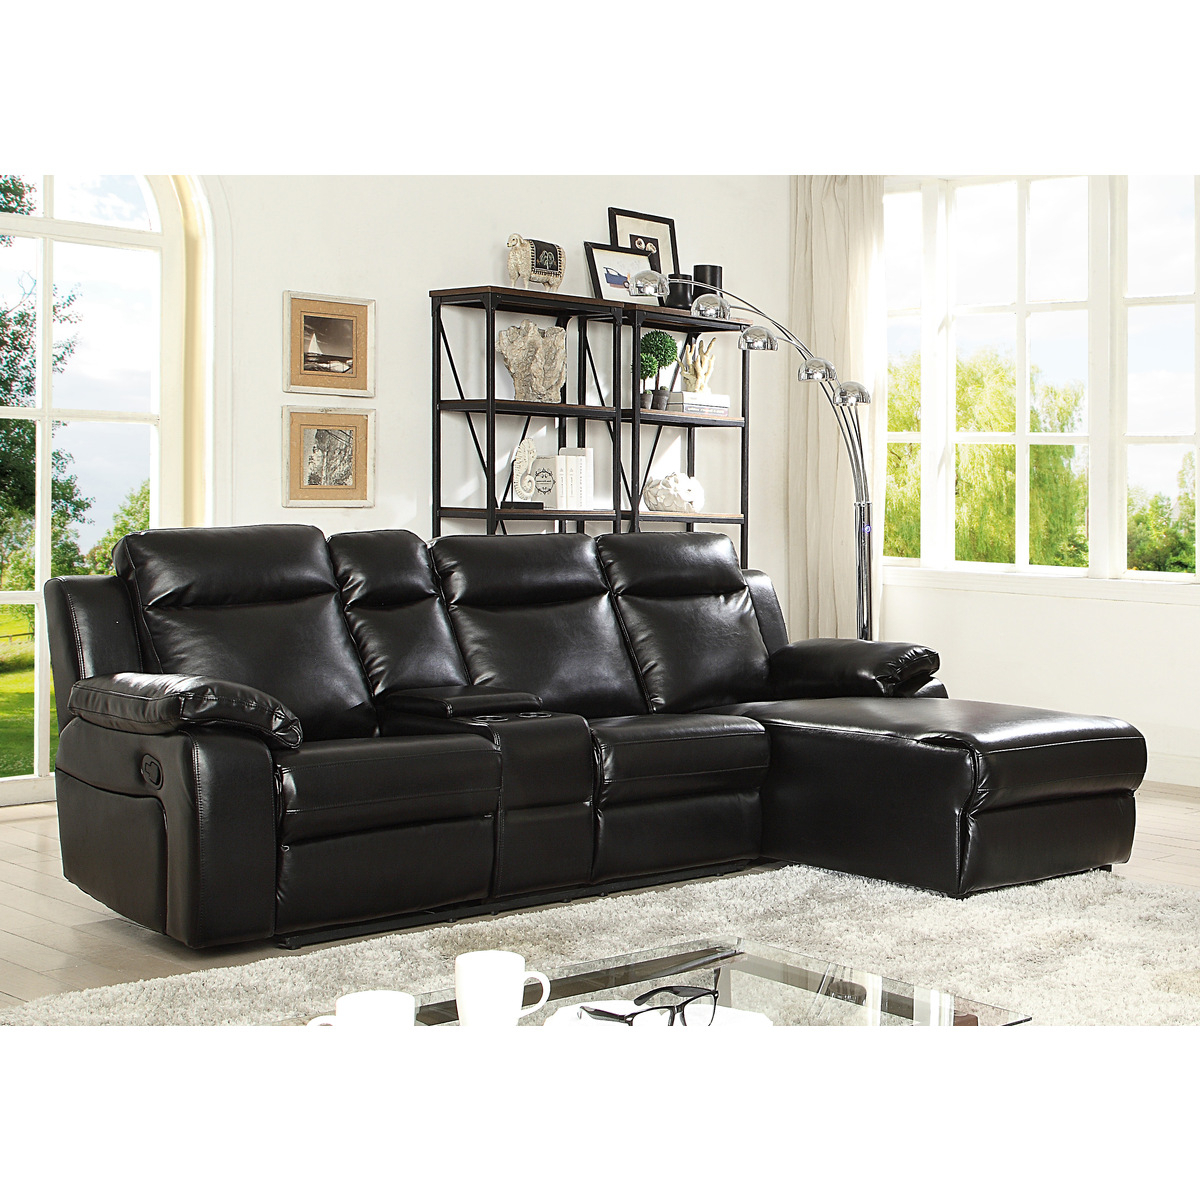 Well Liked 2Pc Connel Modern Chaise Sectional Sofas Black Intended For 9110Blkss 2Pc Sofa Chaise Black (View 19 of 25)